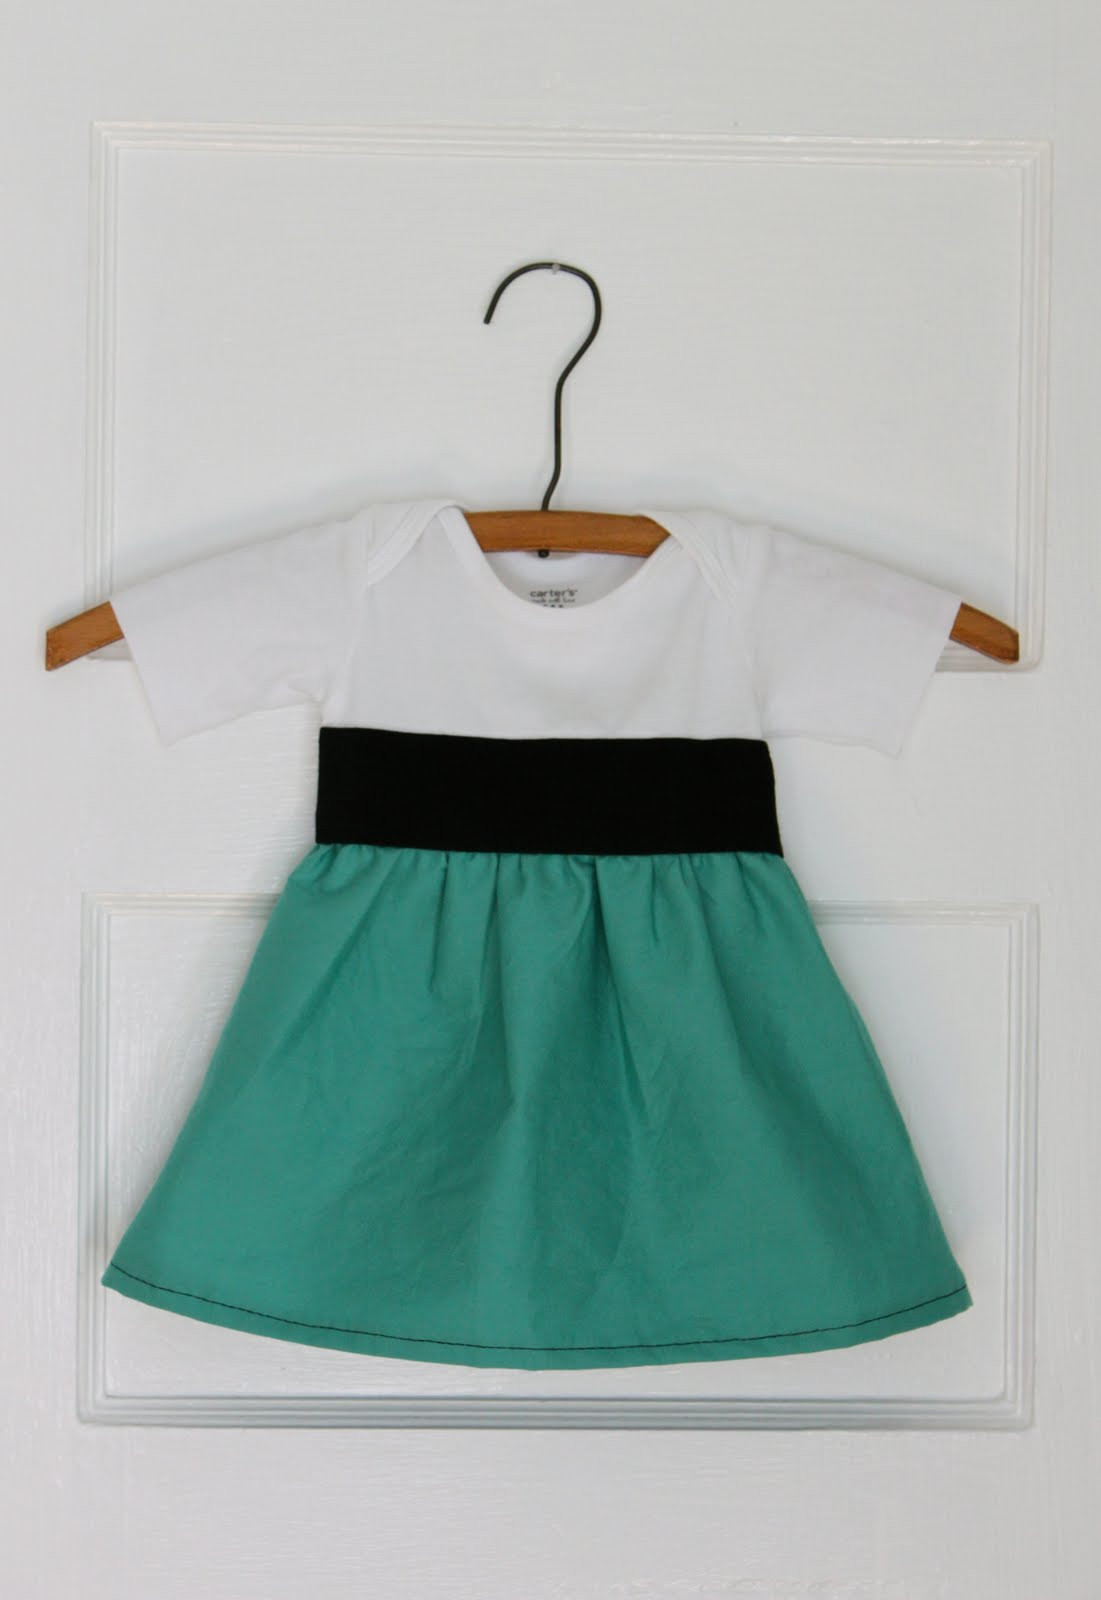 Best ideas about DIY Baby Dresses . Save or Pin Smile and Wave DIY esie to Dress Tutorial Now.